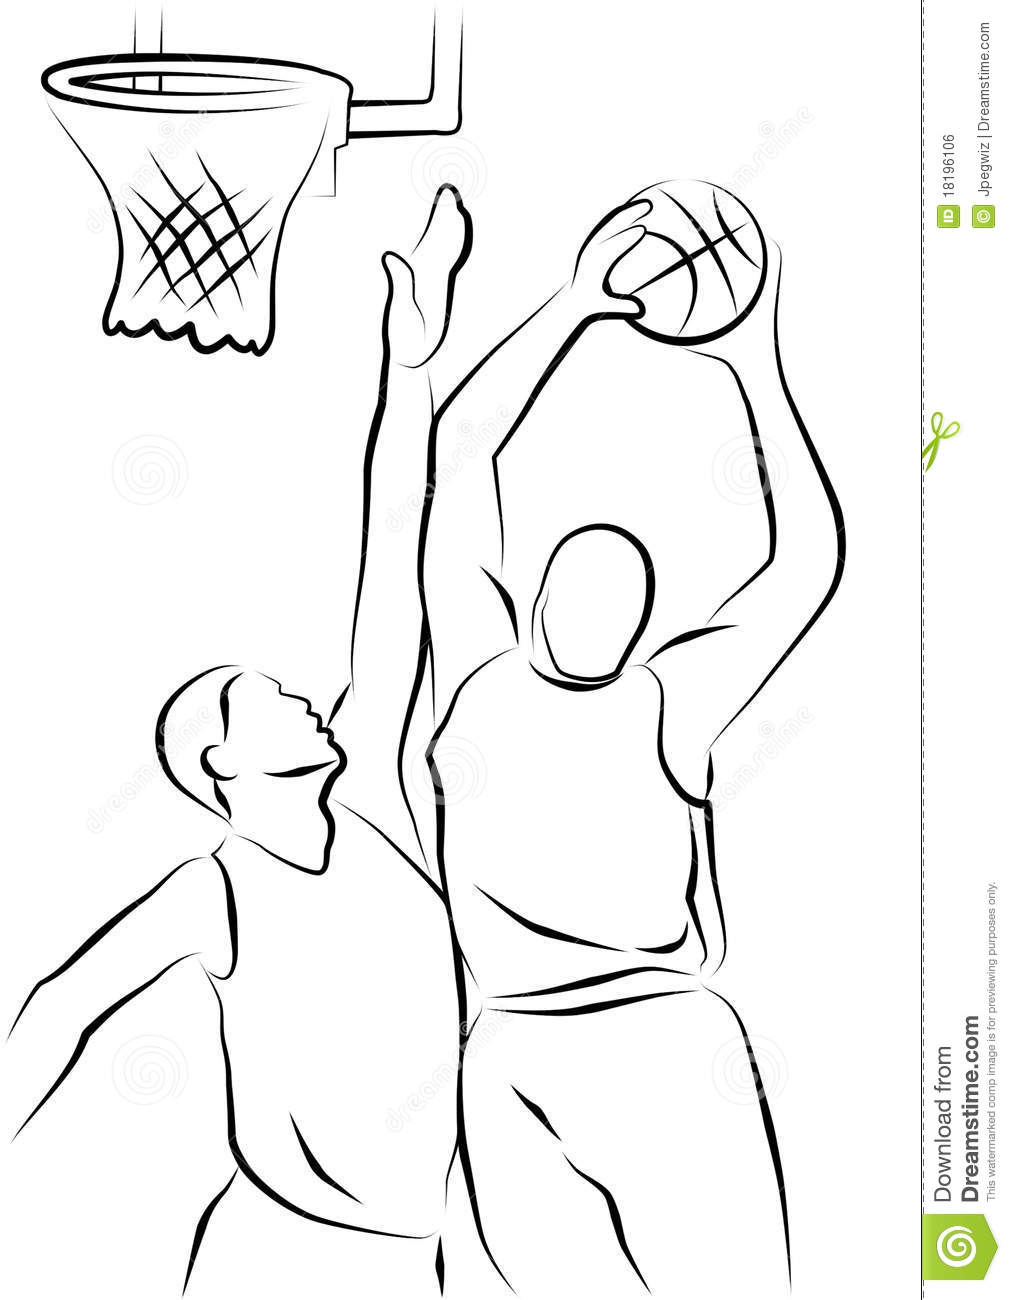 Basketball Players Stock Illustration Image Of Symbol